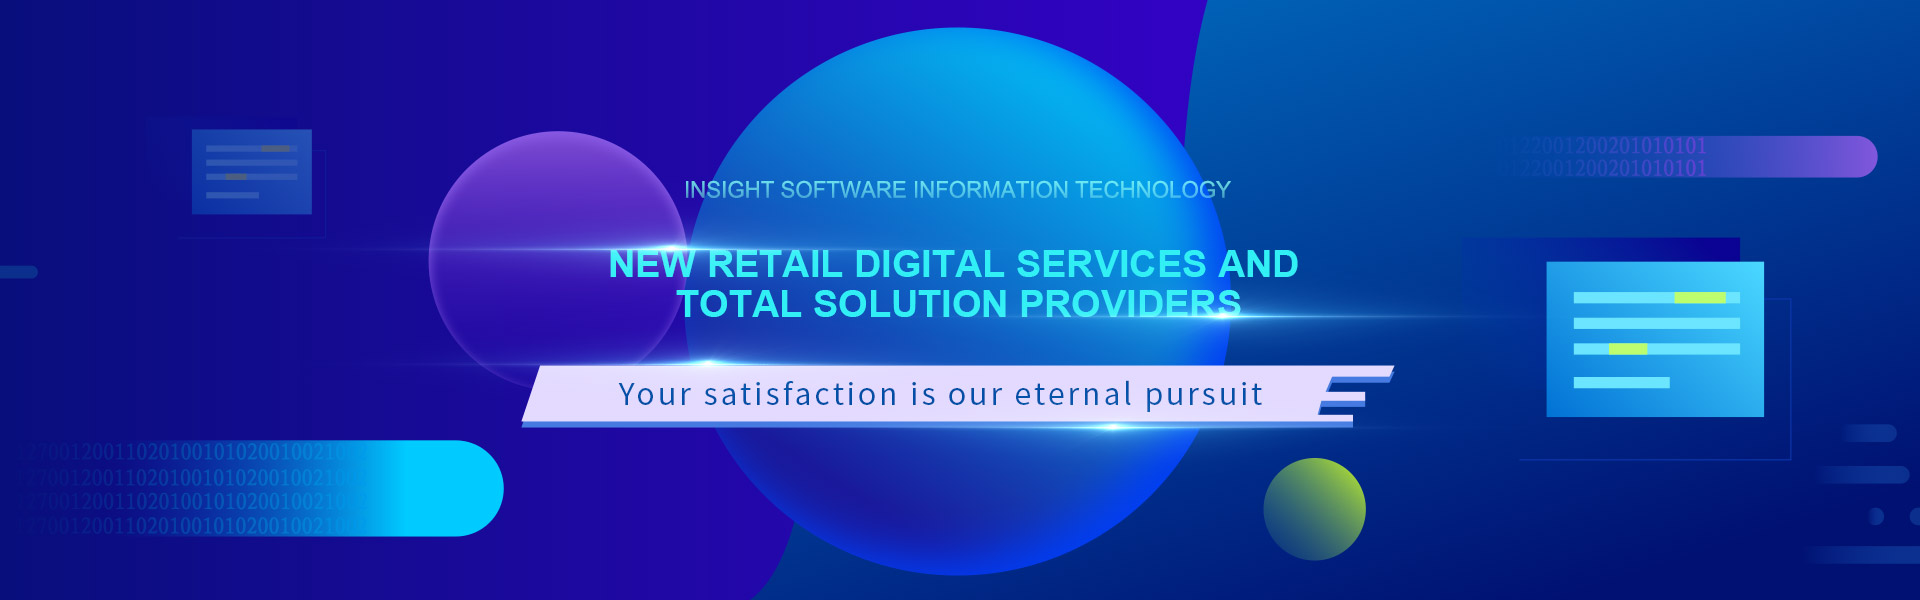 Shanghai Insight Software Information Technology Co., Ltd.